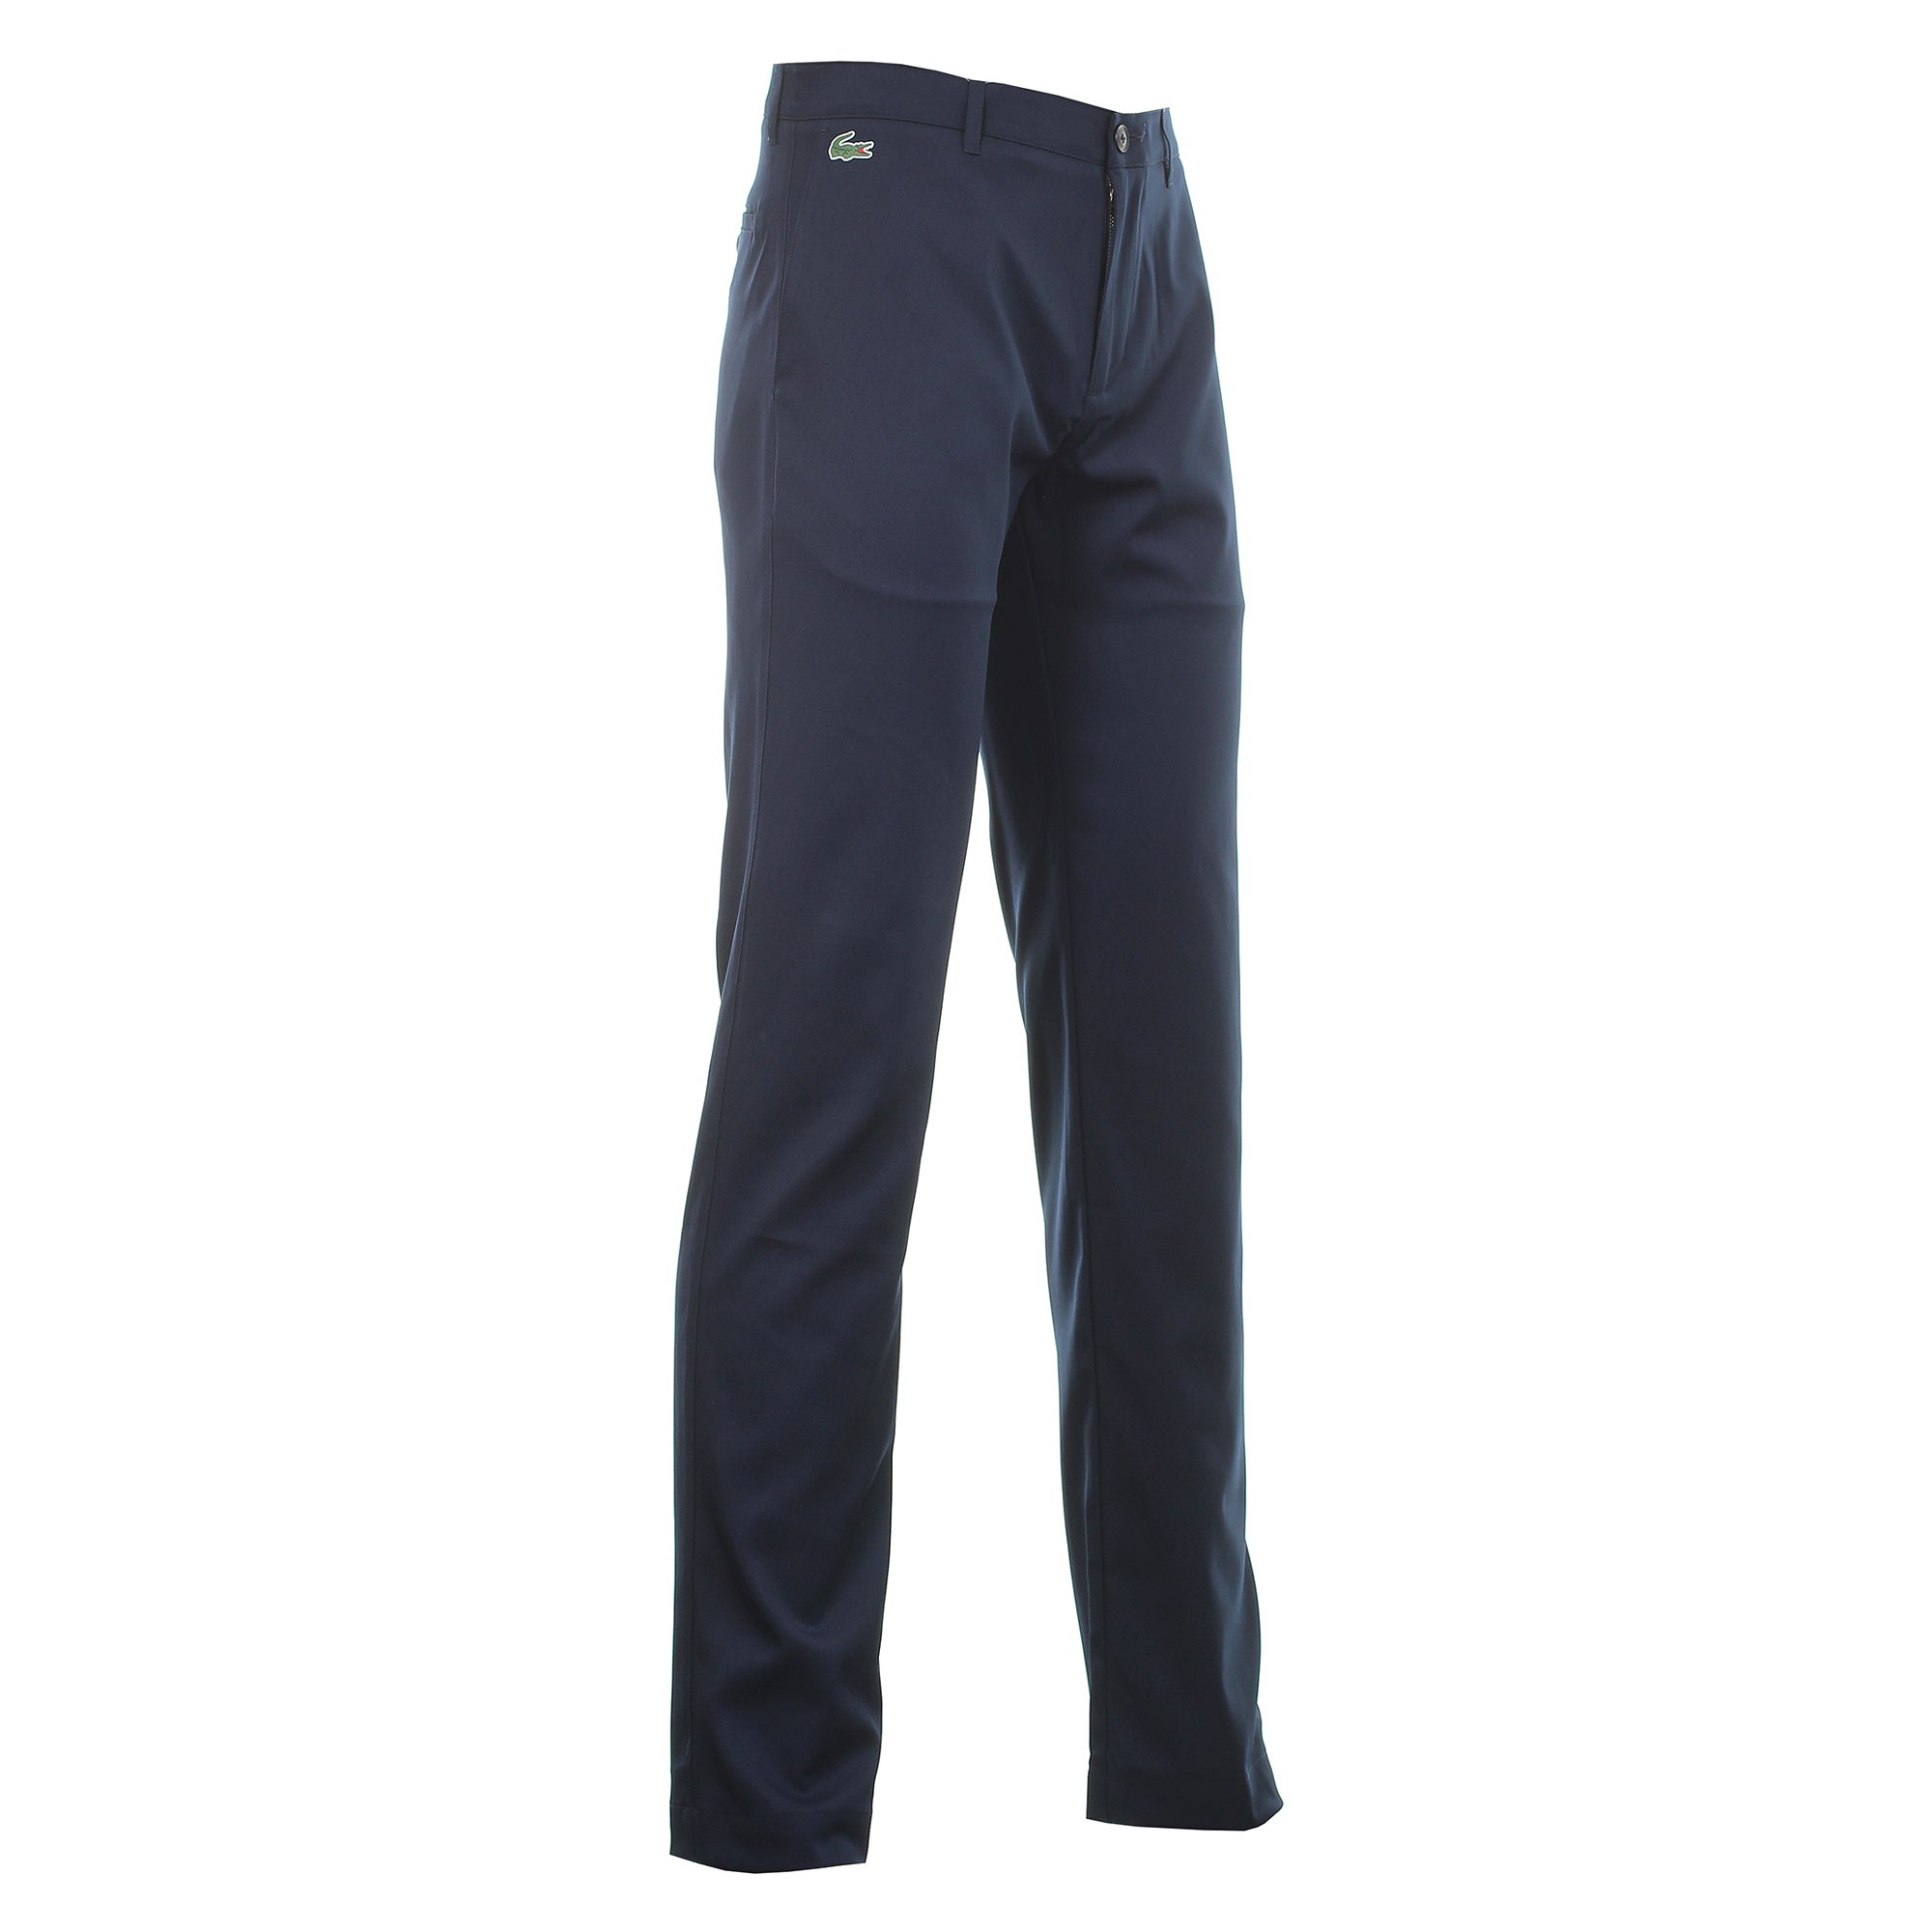 Lacoste Technical Chino Pant HH9528